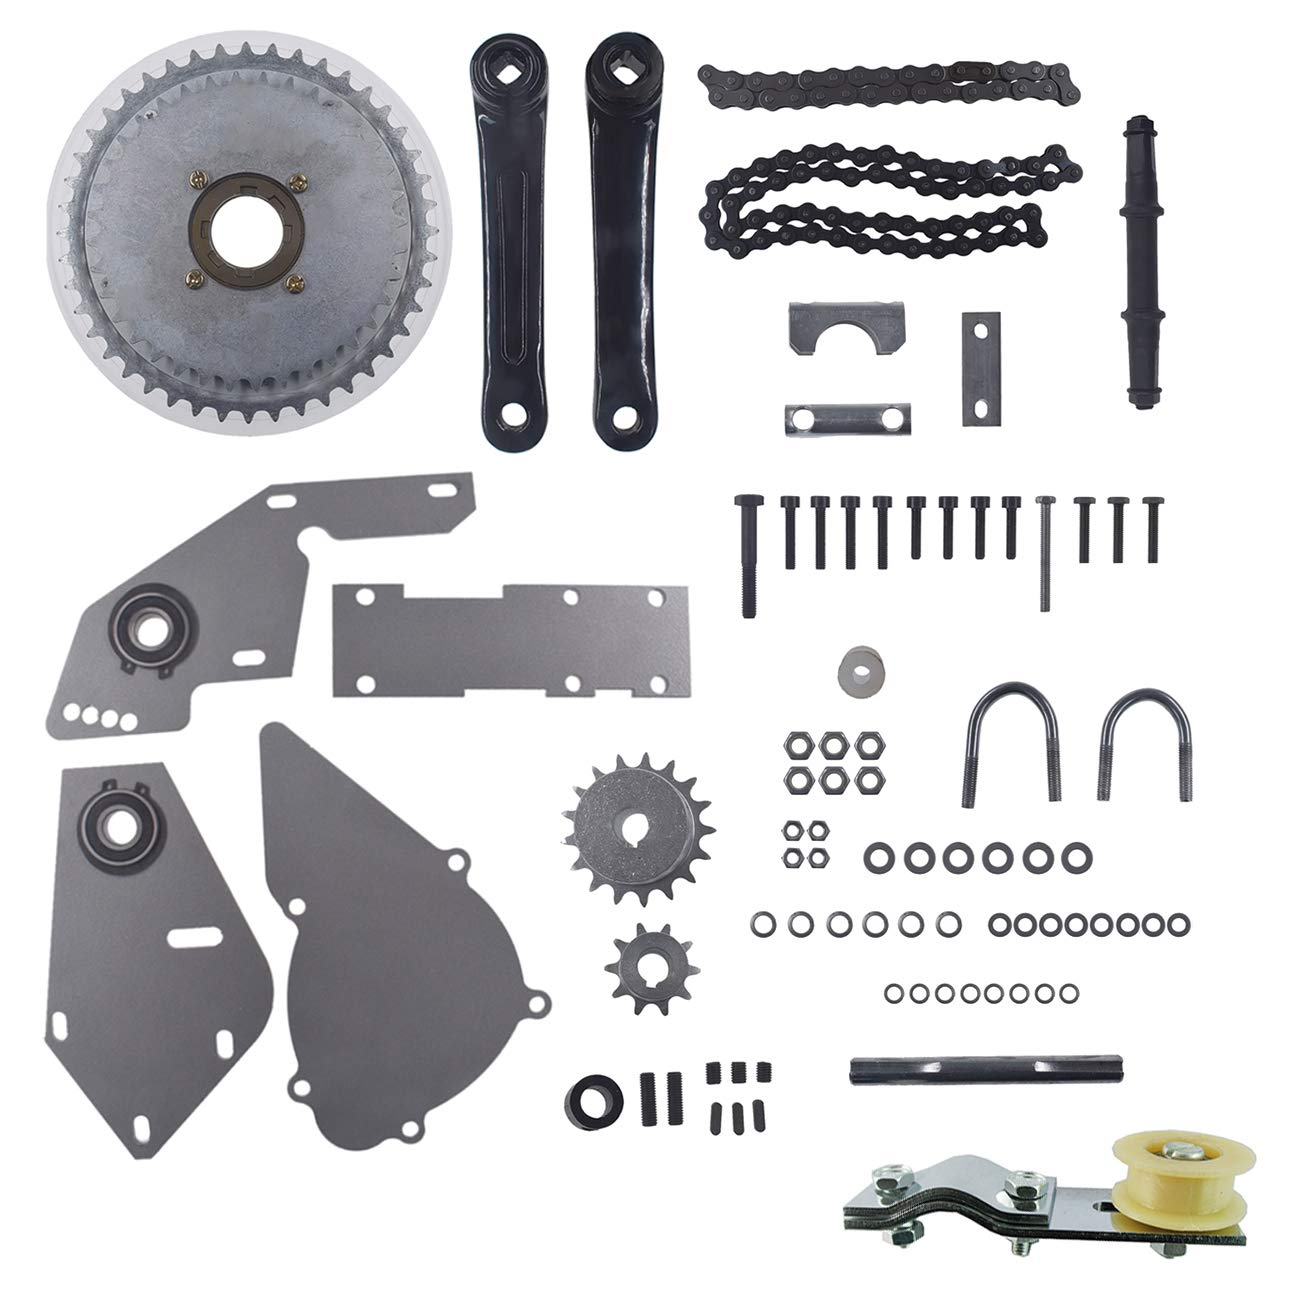 JRL Silver Shifter Jackshaft Kit Chain Tensioner 415 Chain 66cc 80cc Gas Motorized Bike